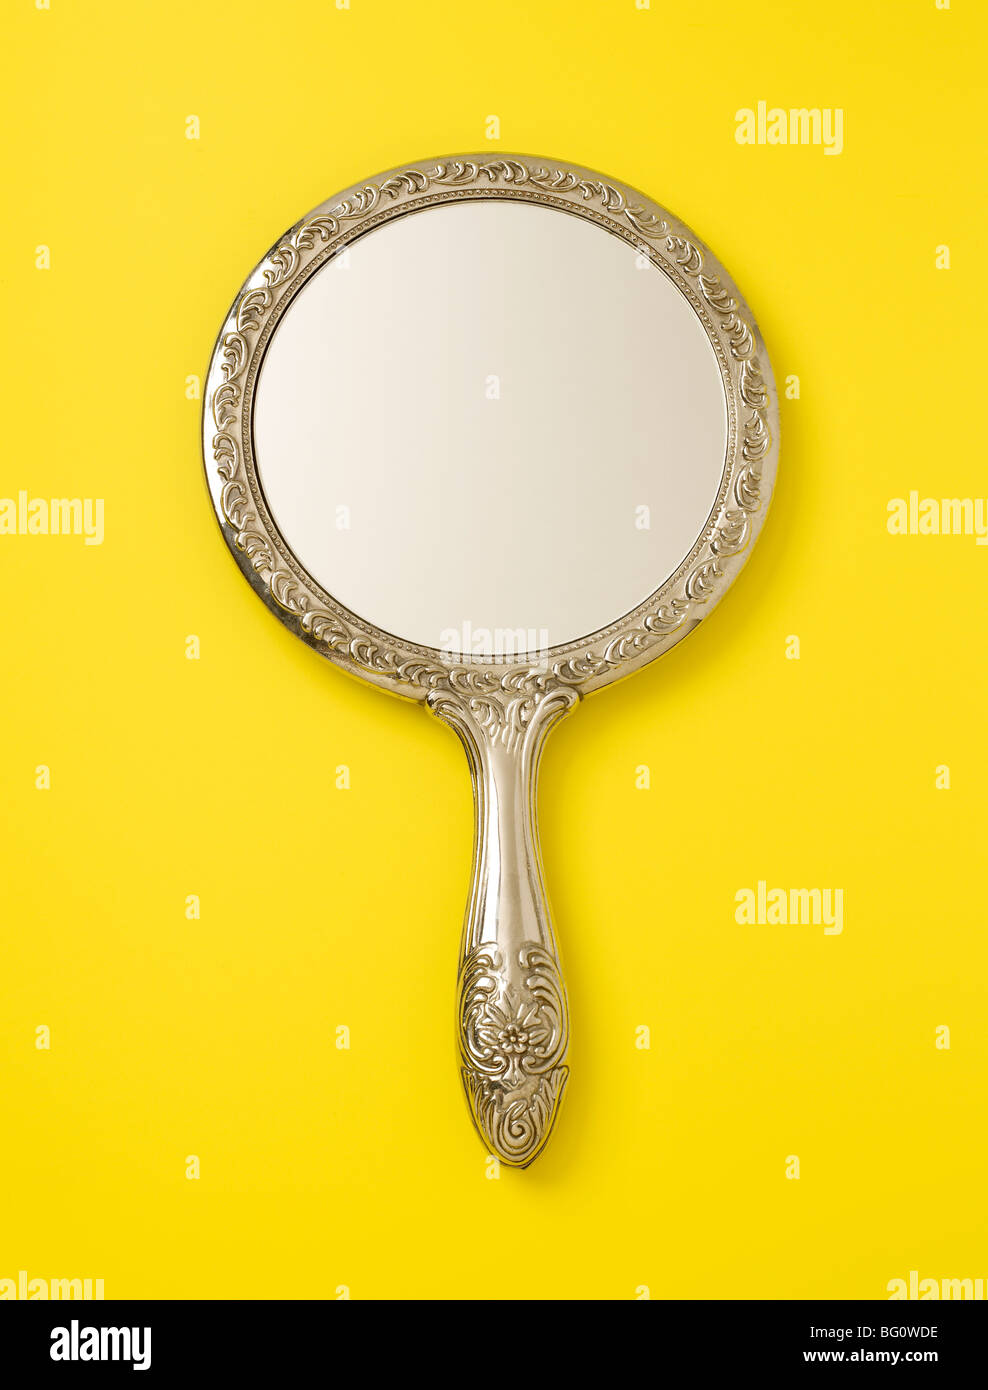 Silver Framed Hand Held Mirror - Stock Image